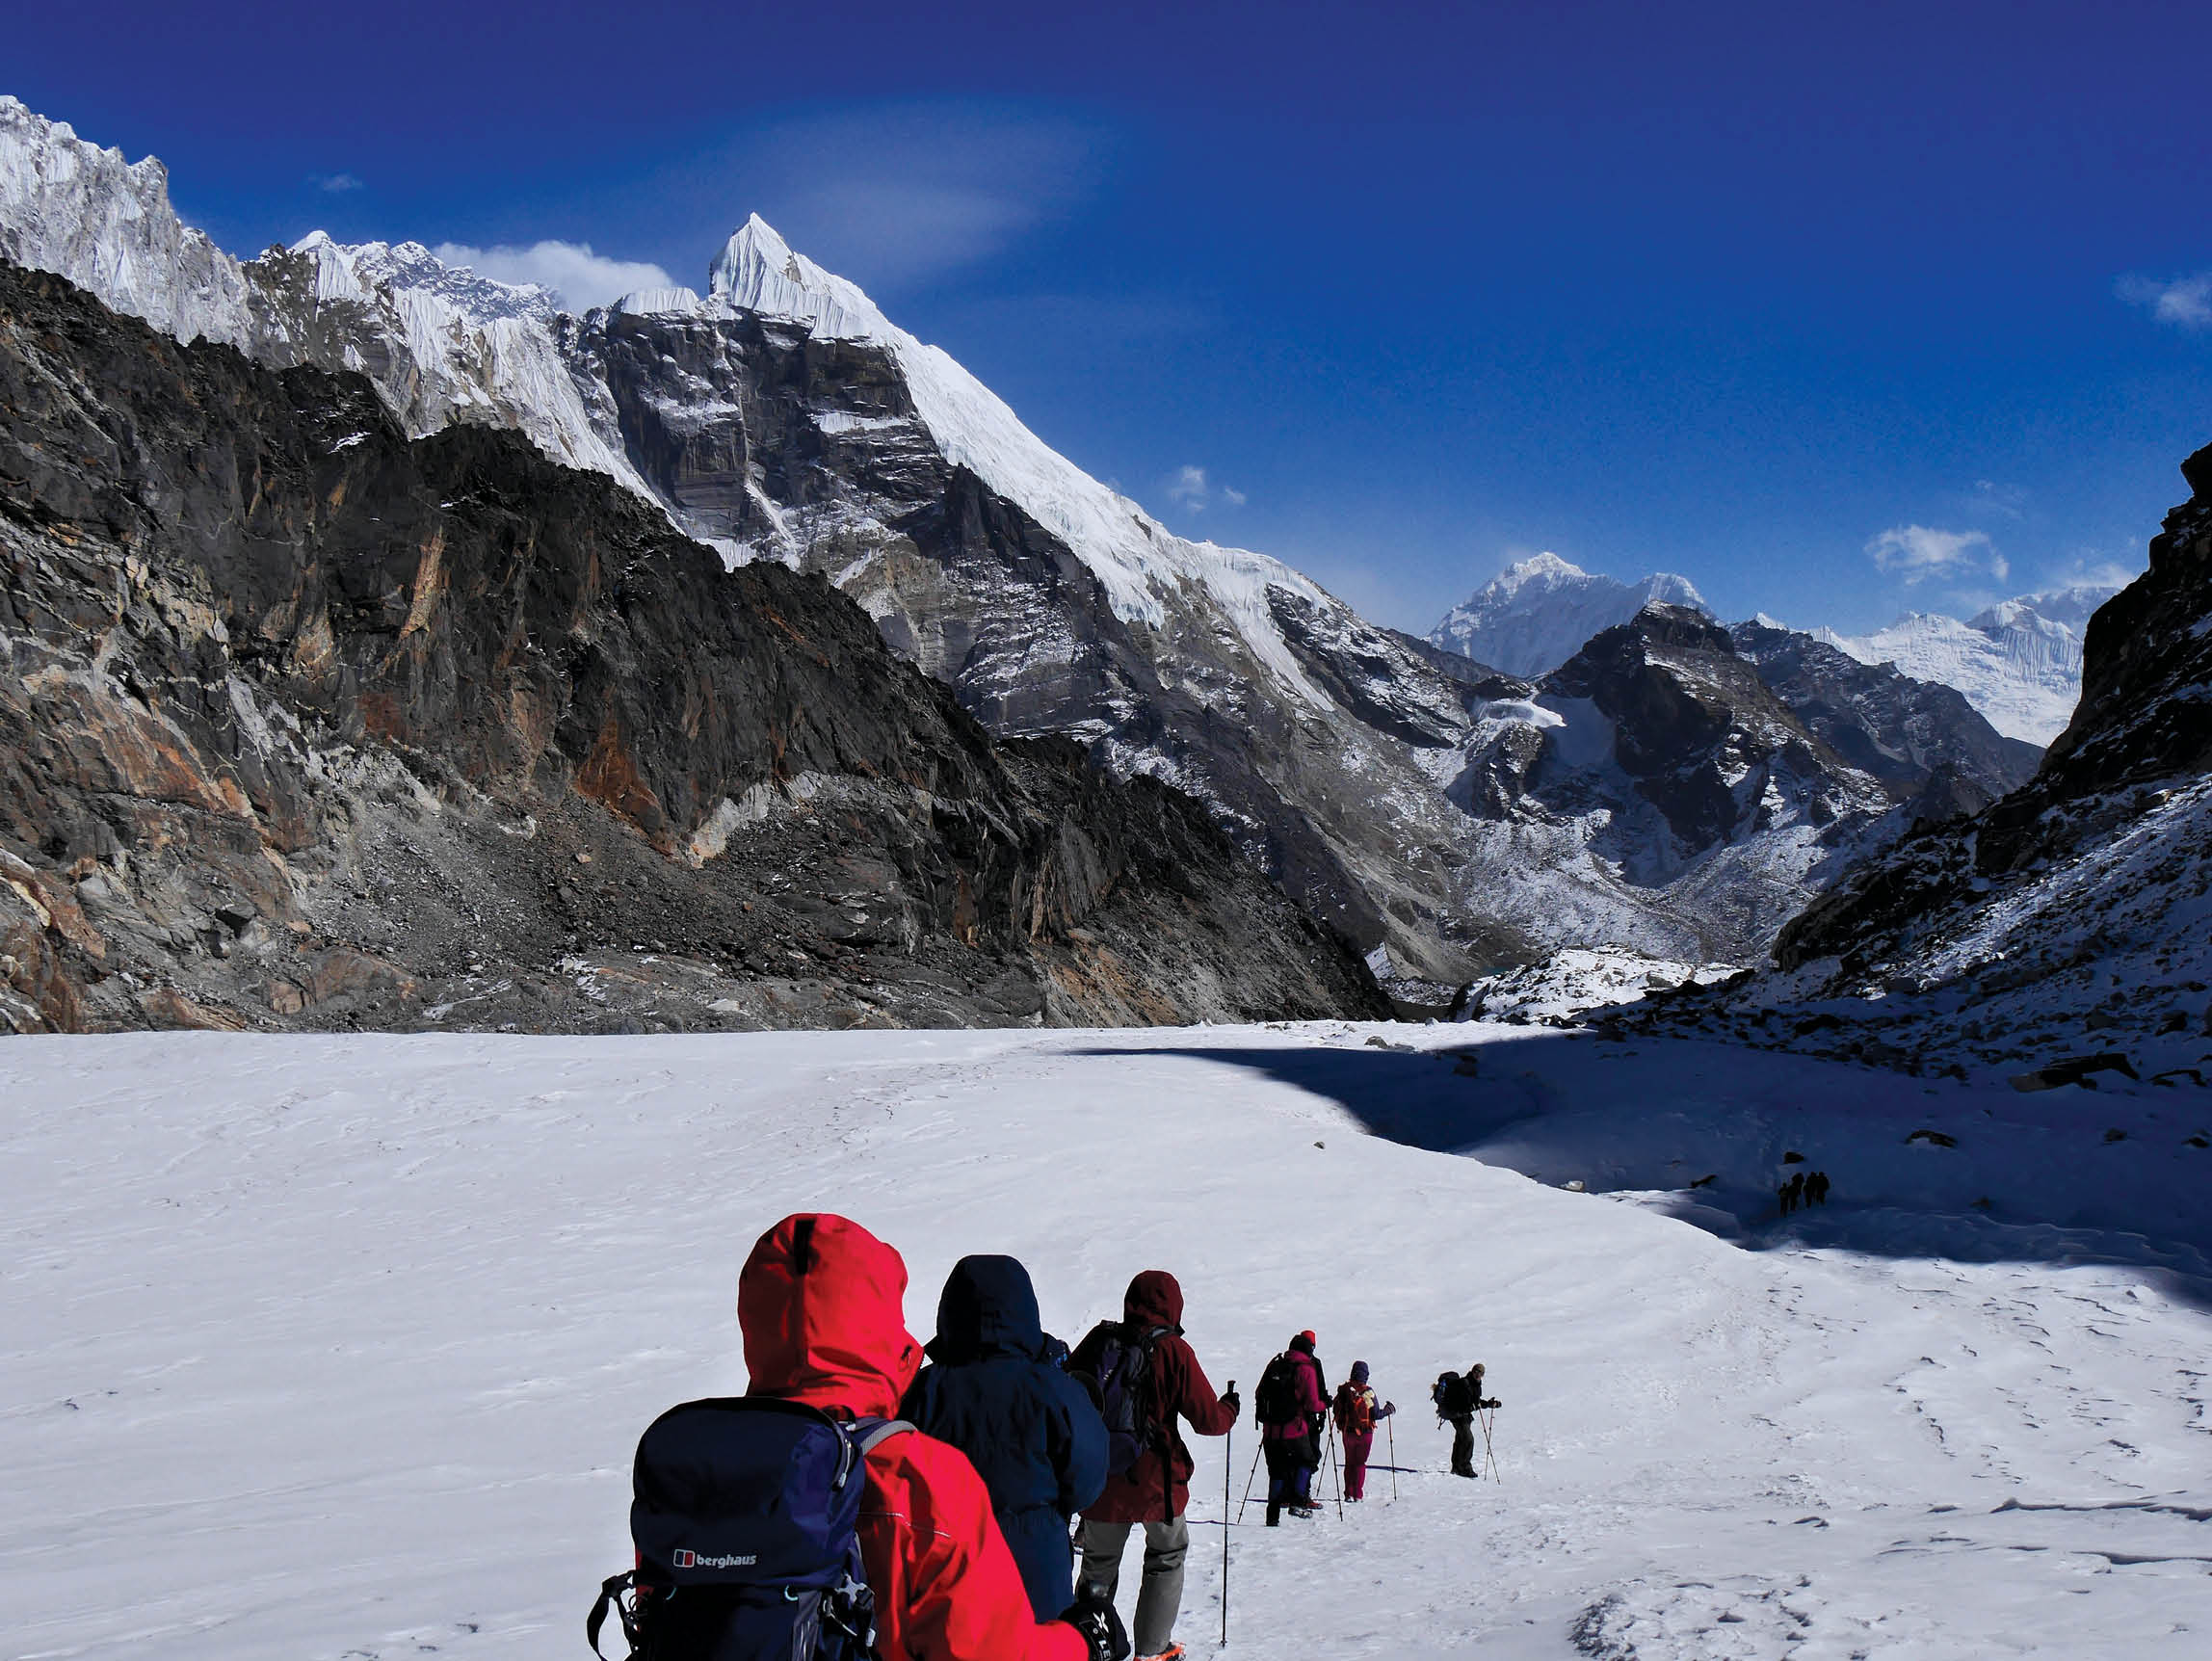 Trekking in Nepal: One of the highlight of anyone's time in Nepal is hiking in the Himalayas Mountains. And trekking Nepal with a sherpa makes everything easier!